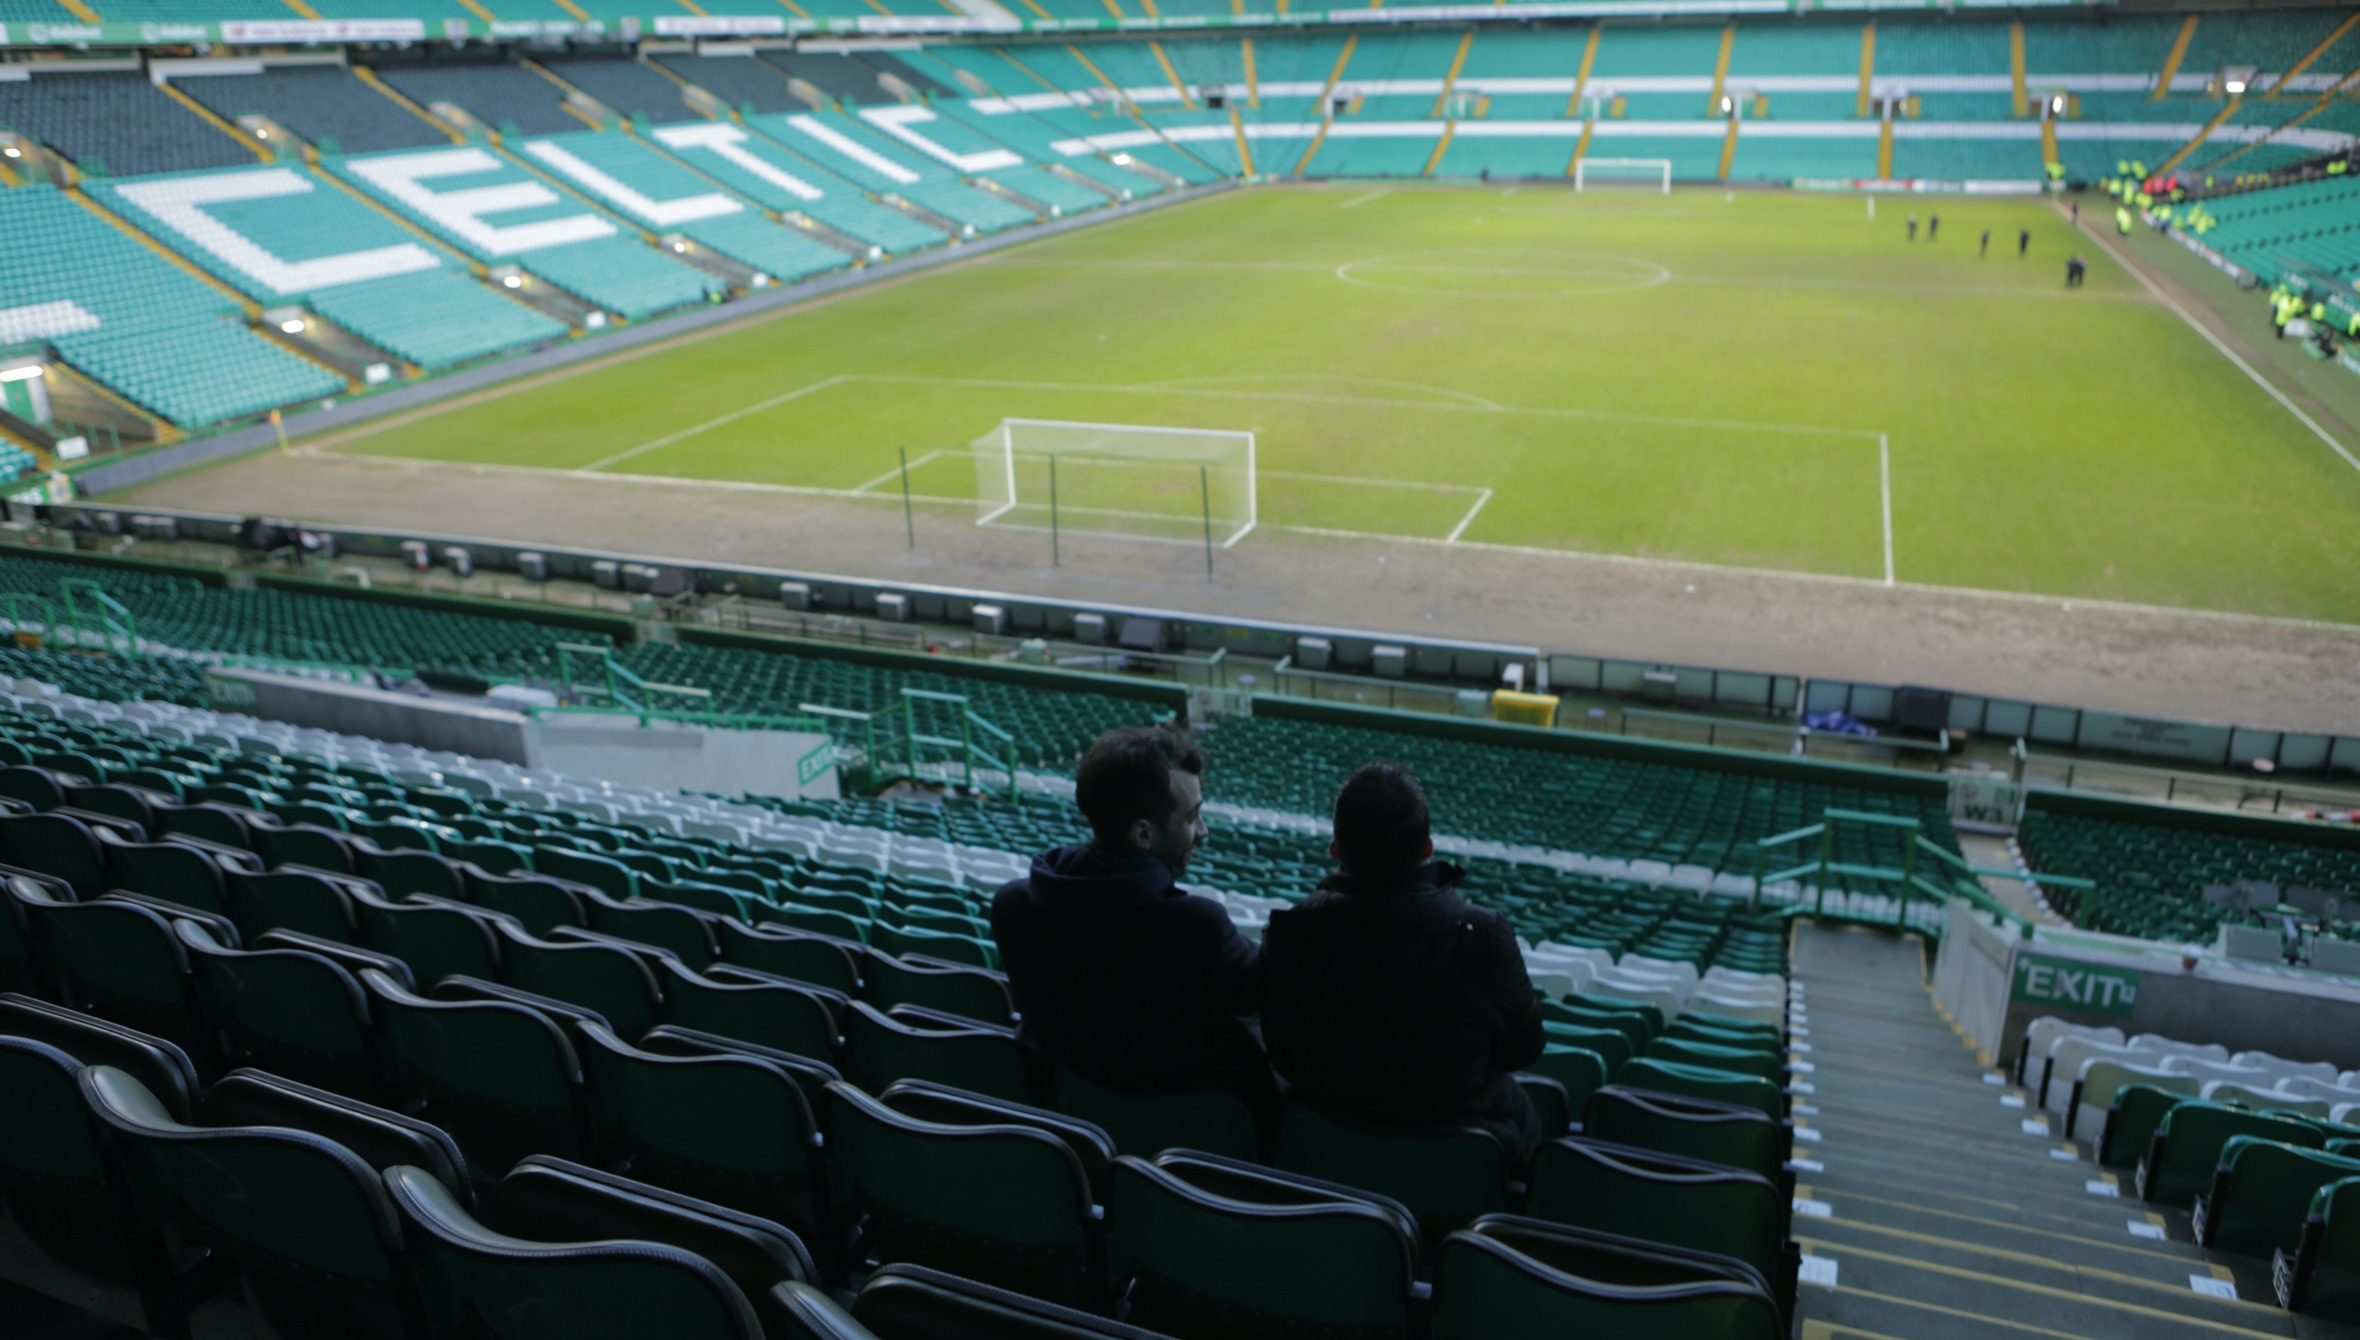 Photo of Jay Baruchel and Eoin O'Callaghan in a football stadium